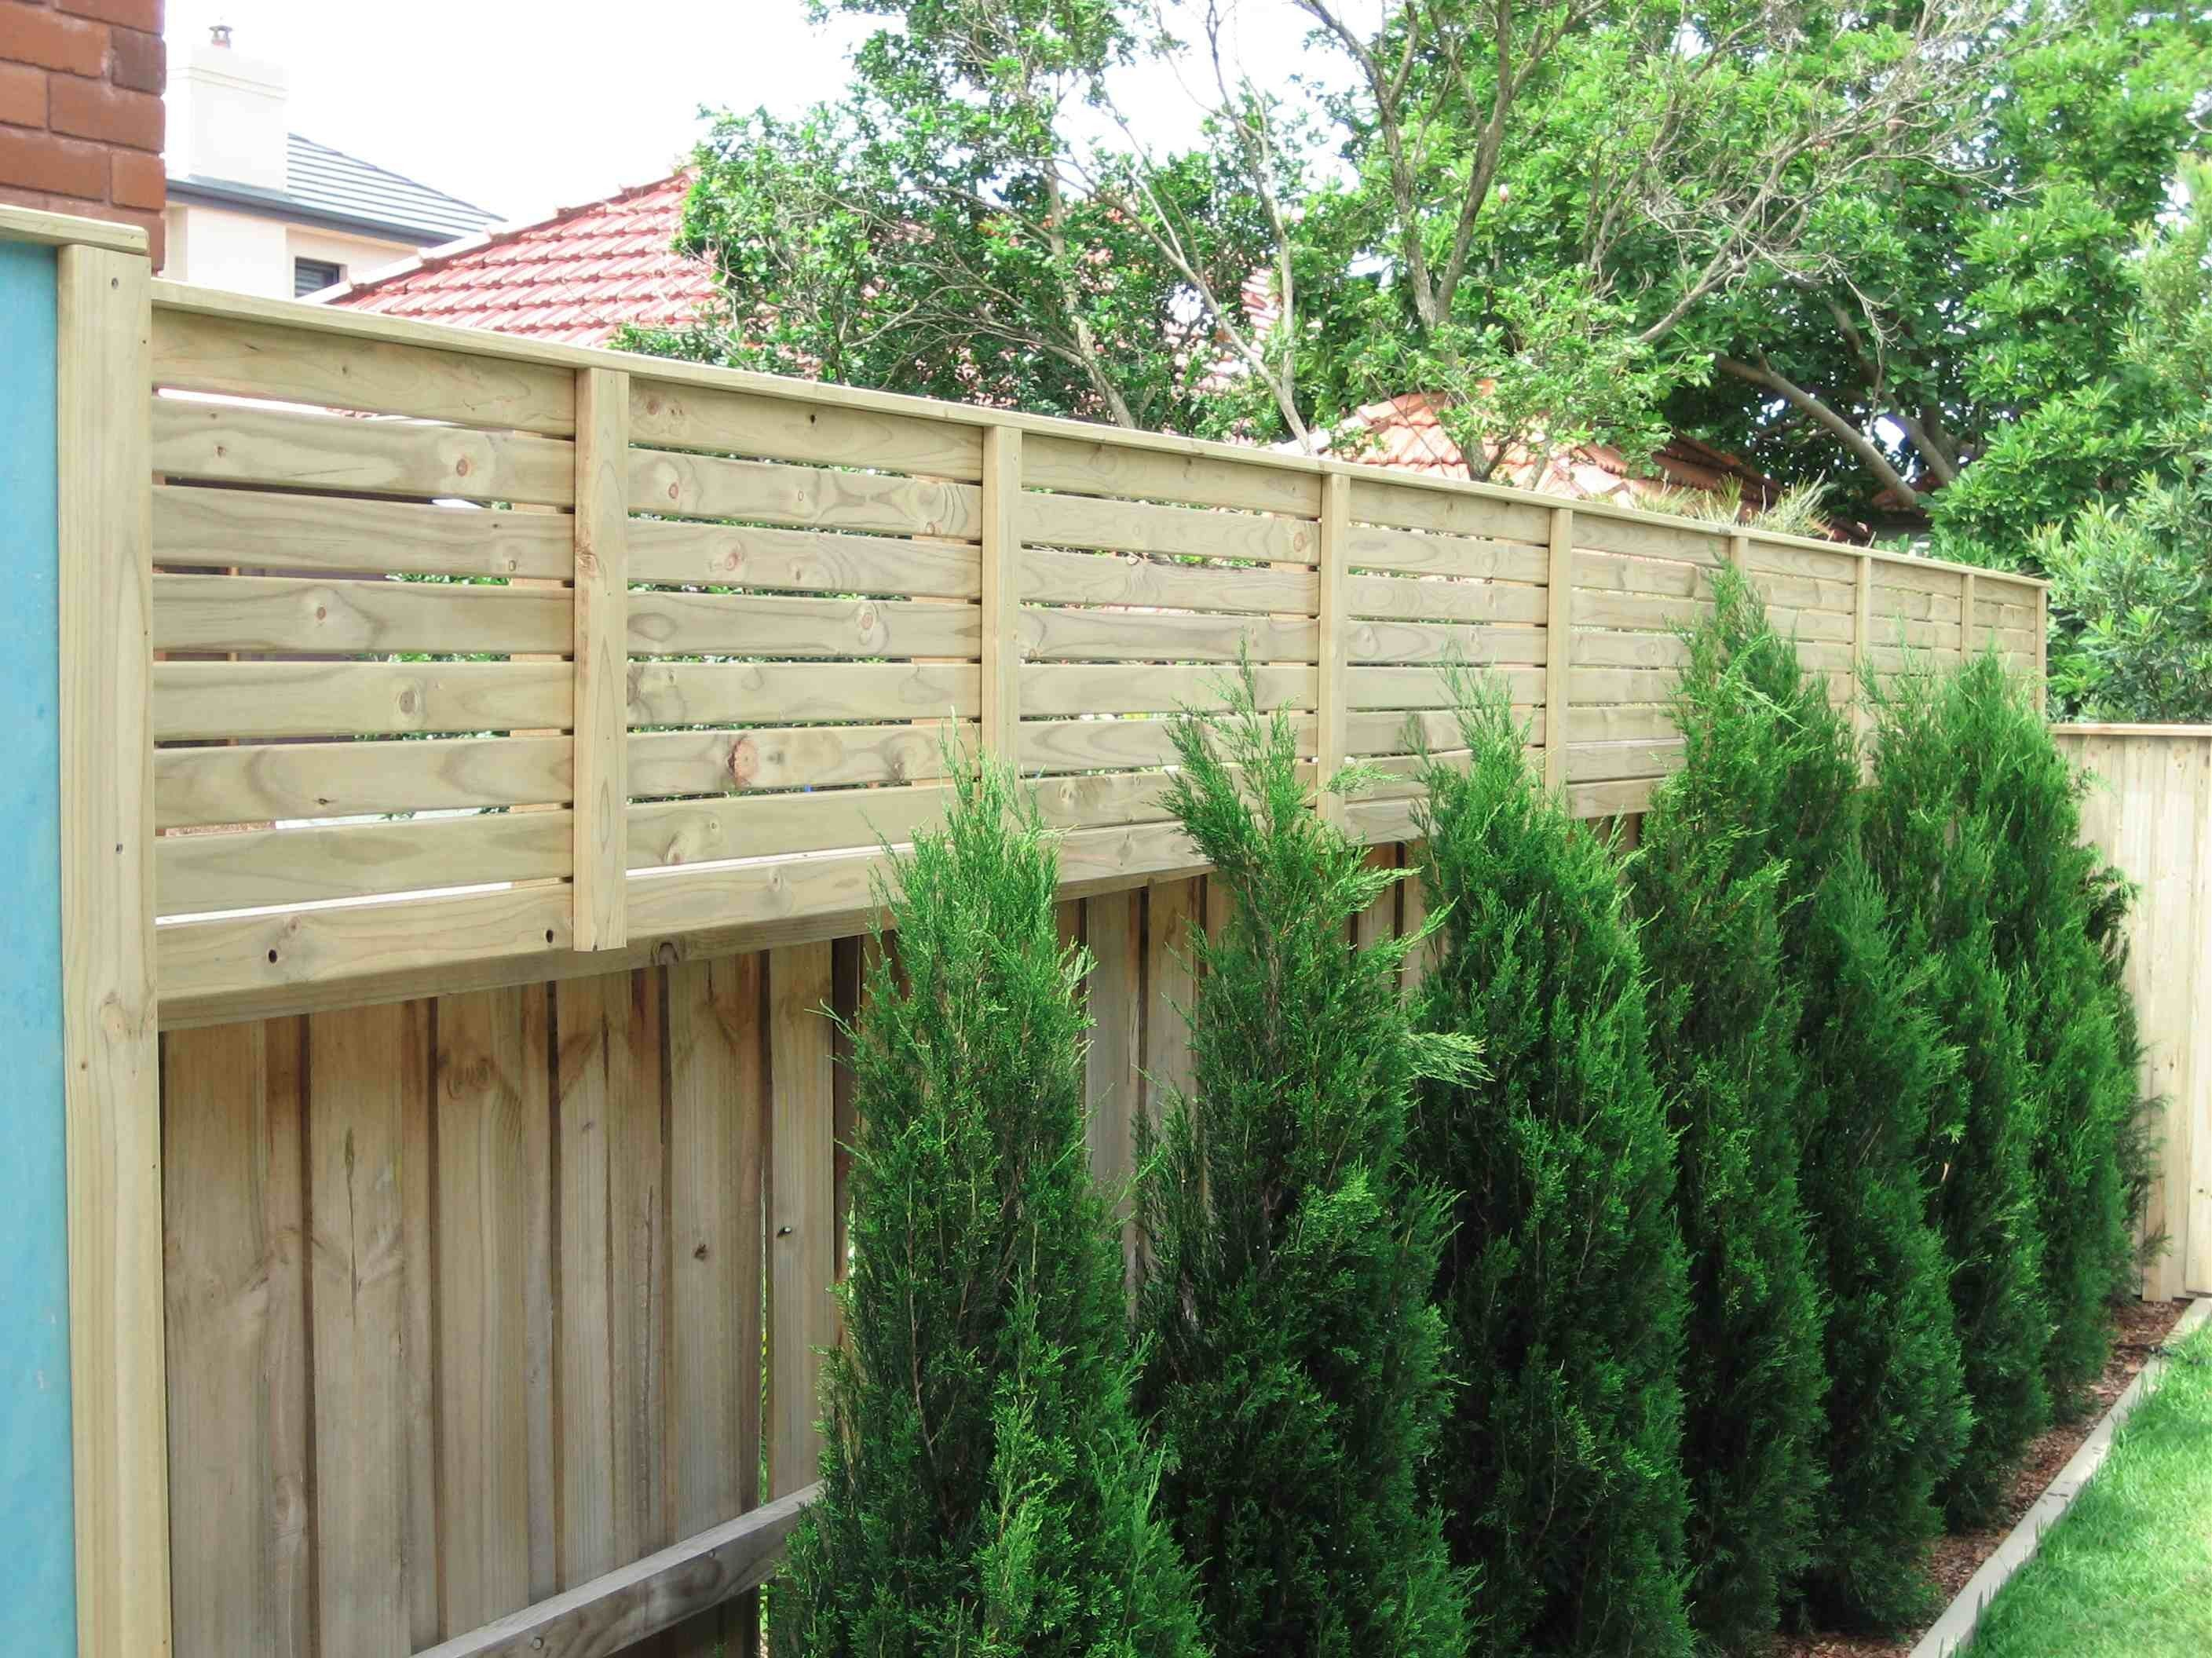 Privacy Screen Ideas For Backyard Privacy Screen Against Fence Google Search House Ideas